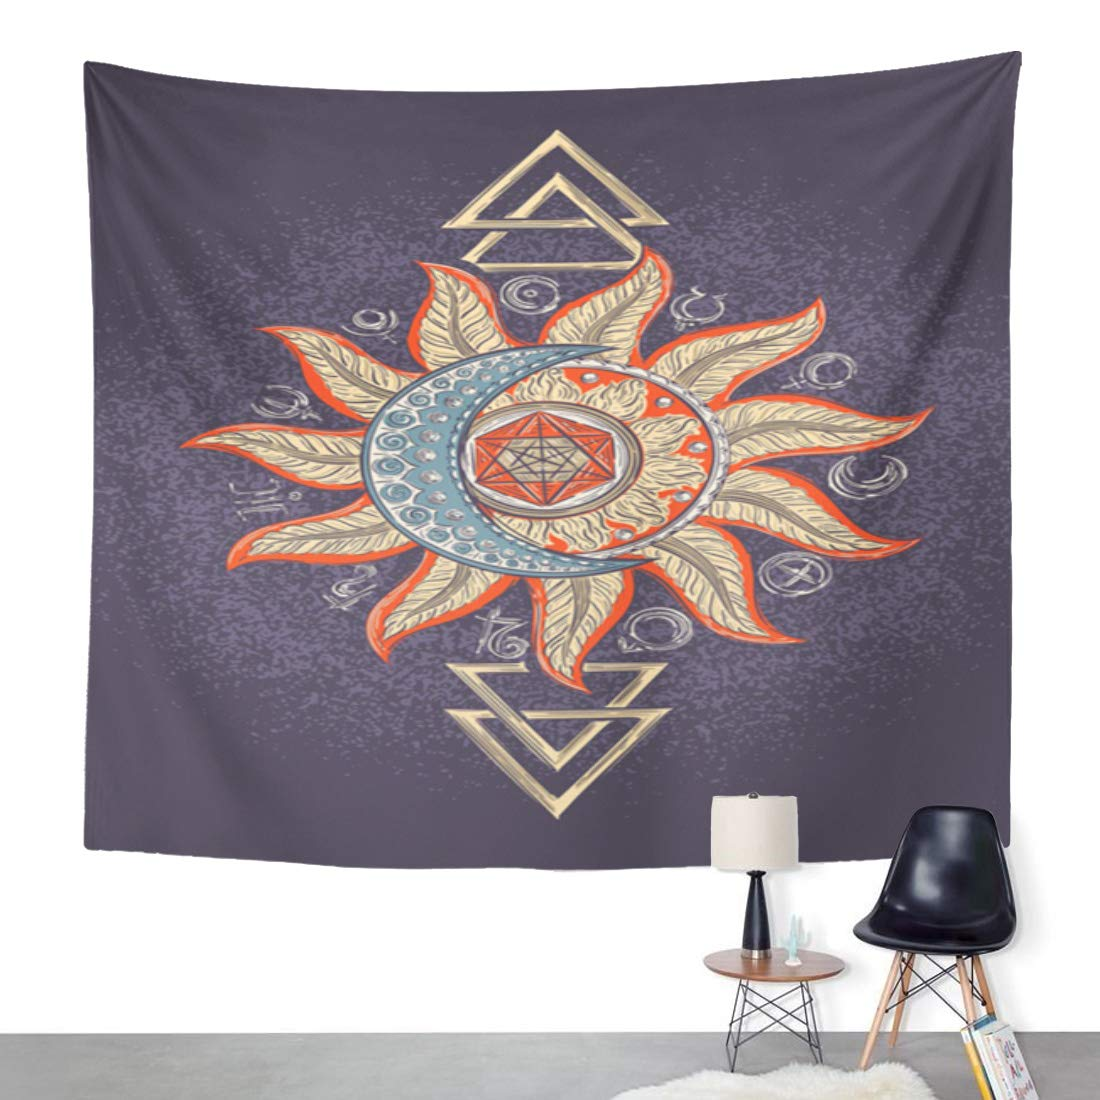 CUTIEE White Claw Hard Seltzer Illustration Art Tapestry Beer Can Graphic Wall Hanging Home Decor for Bedroom Dorm Room 59x59 Inches White, One Size